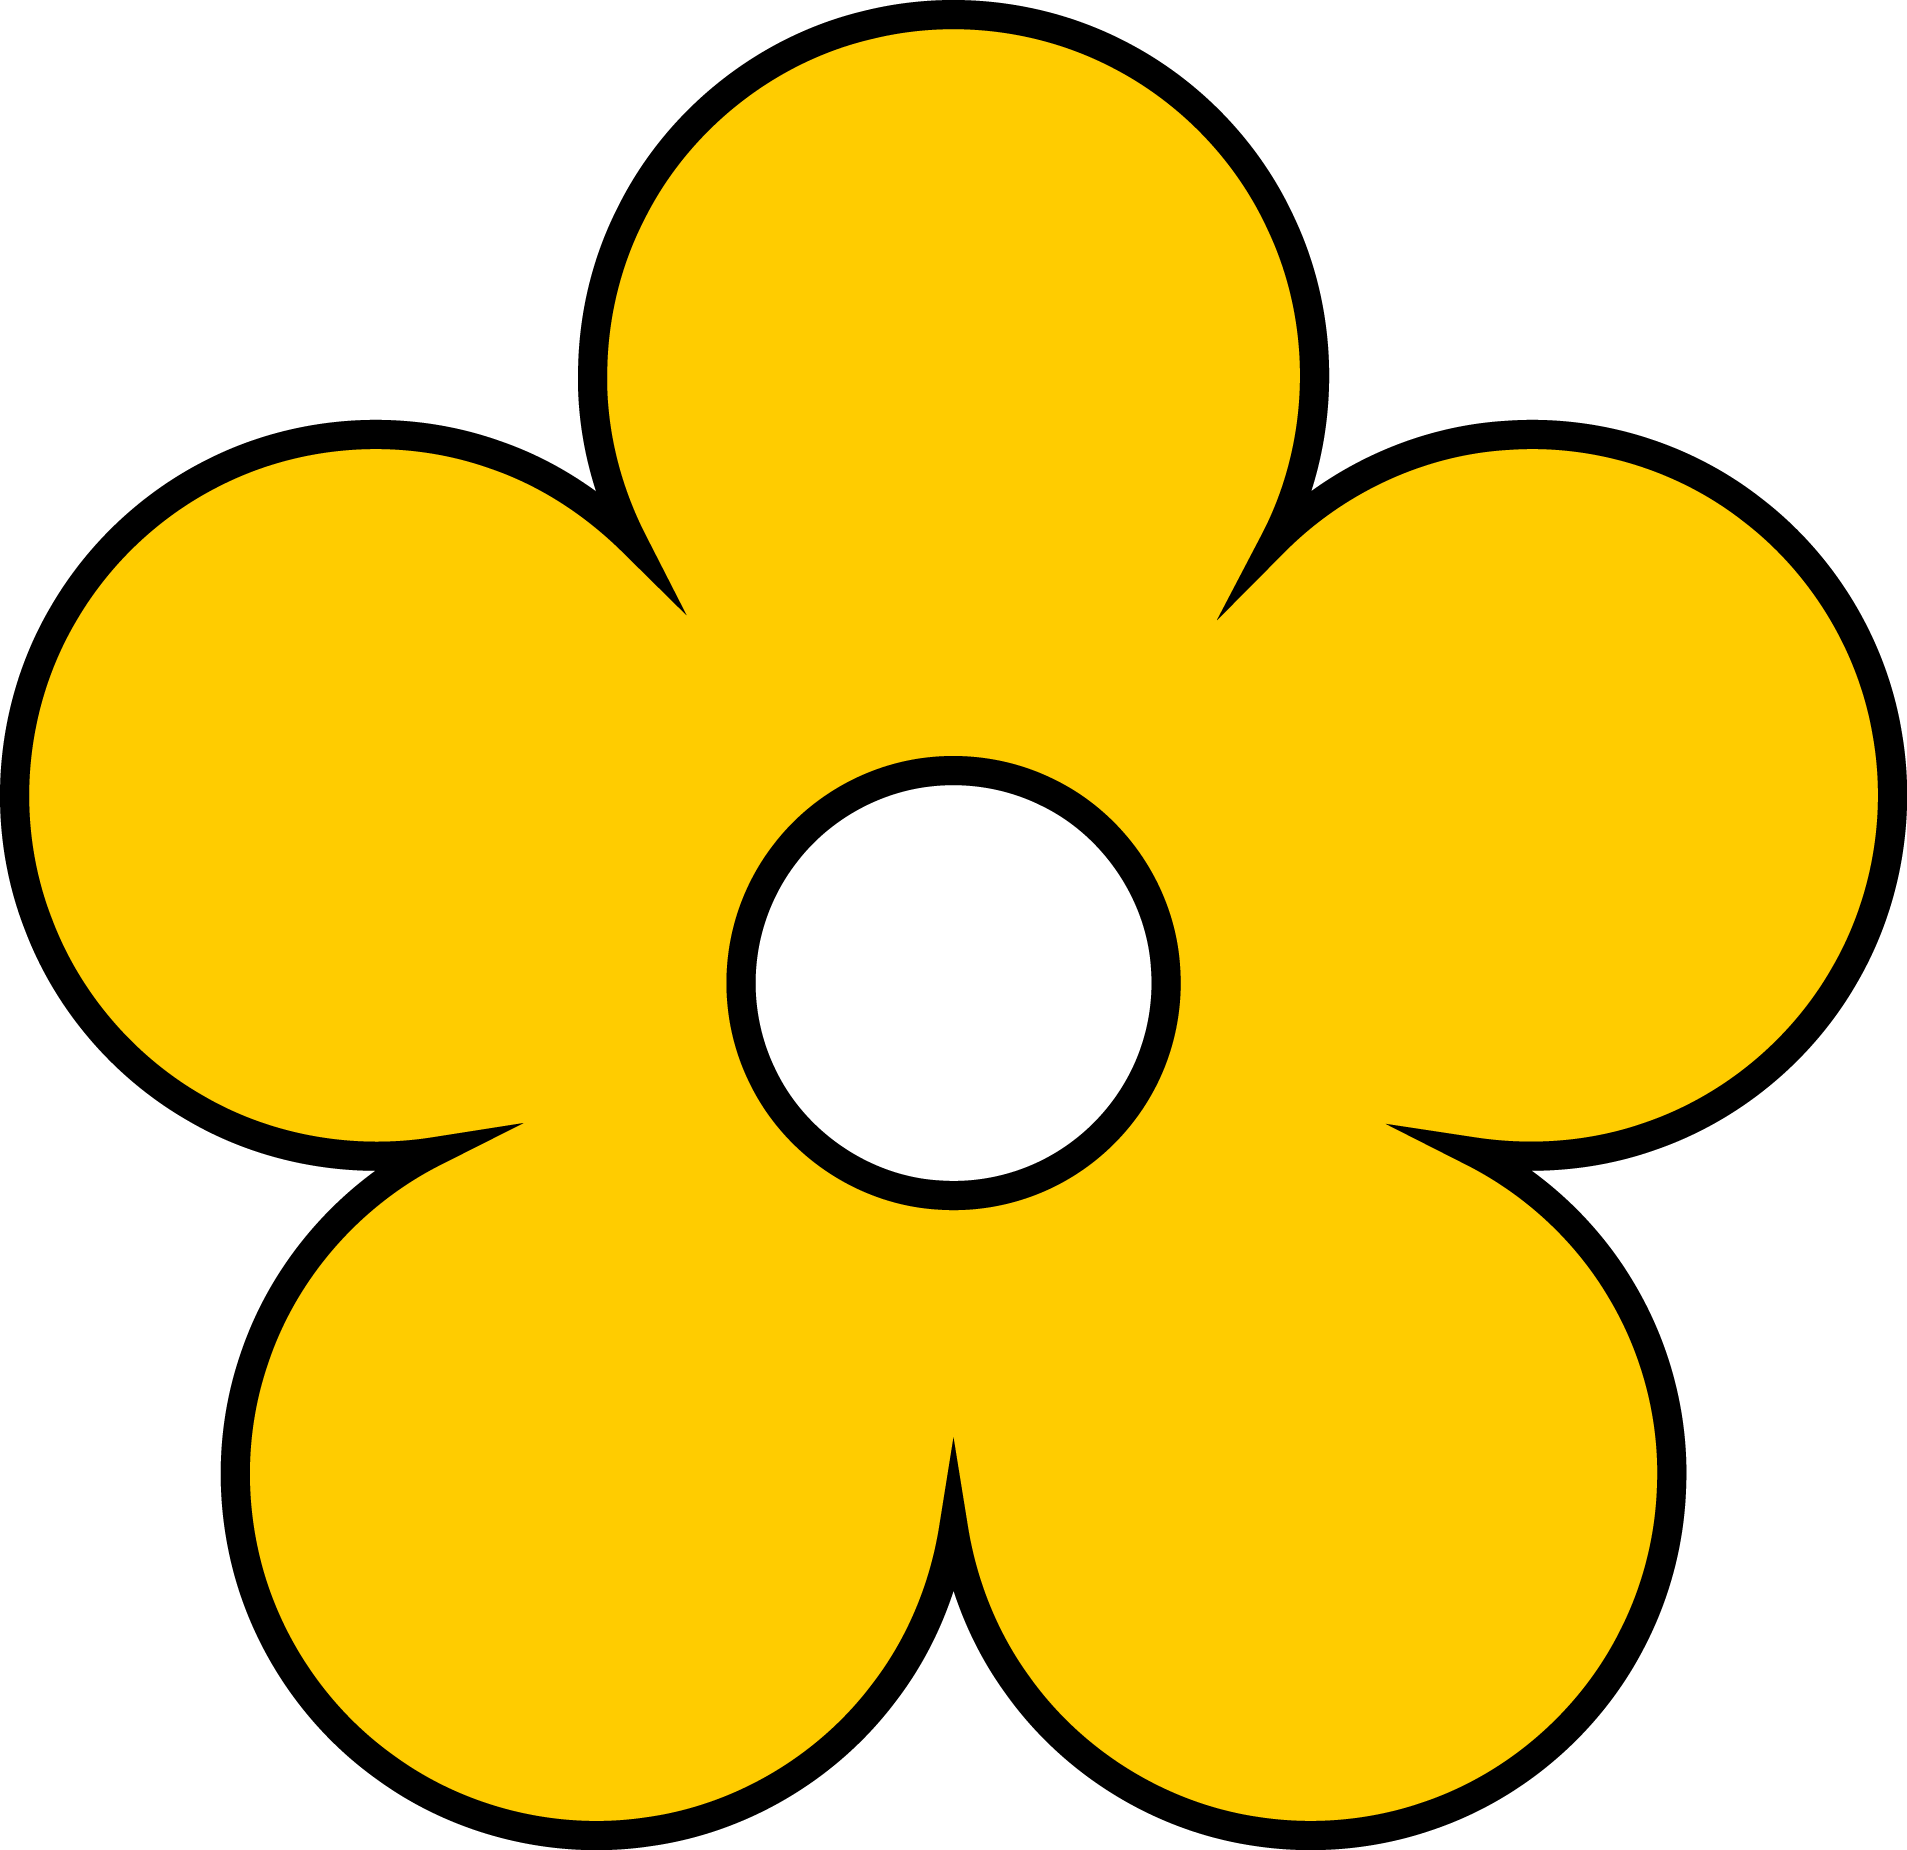 Club penguin flower thepix. Flowers clipart yellow